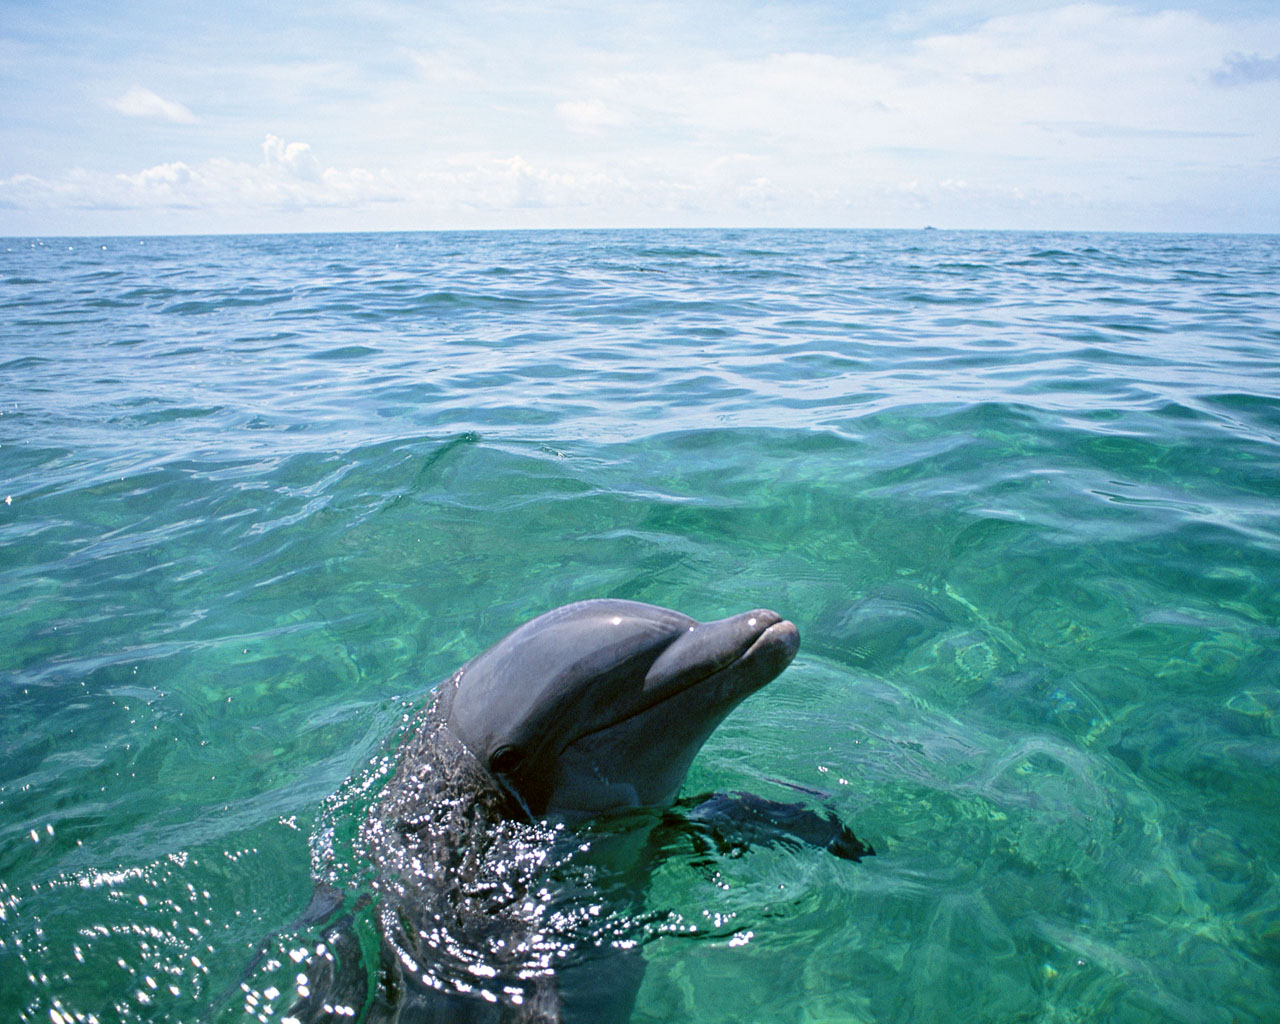 Download full size Dolphins wallpaper / Animals / 1280x1024